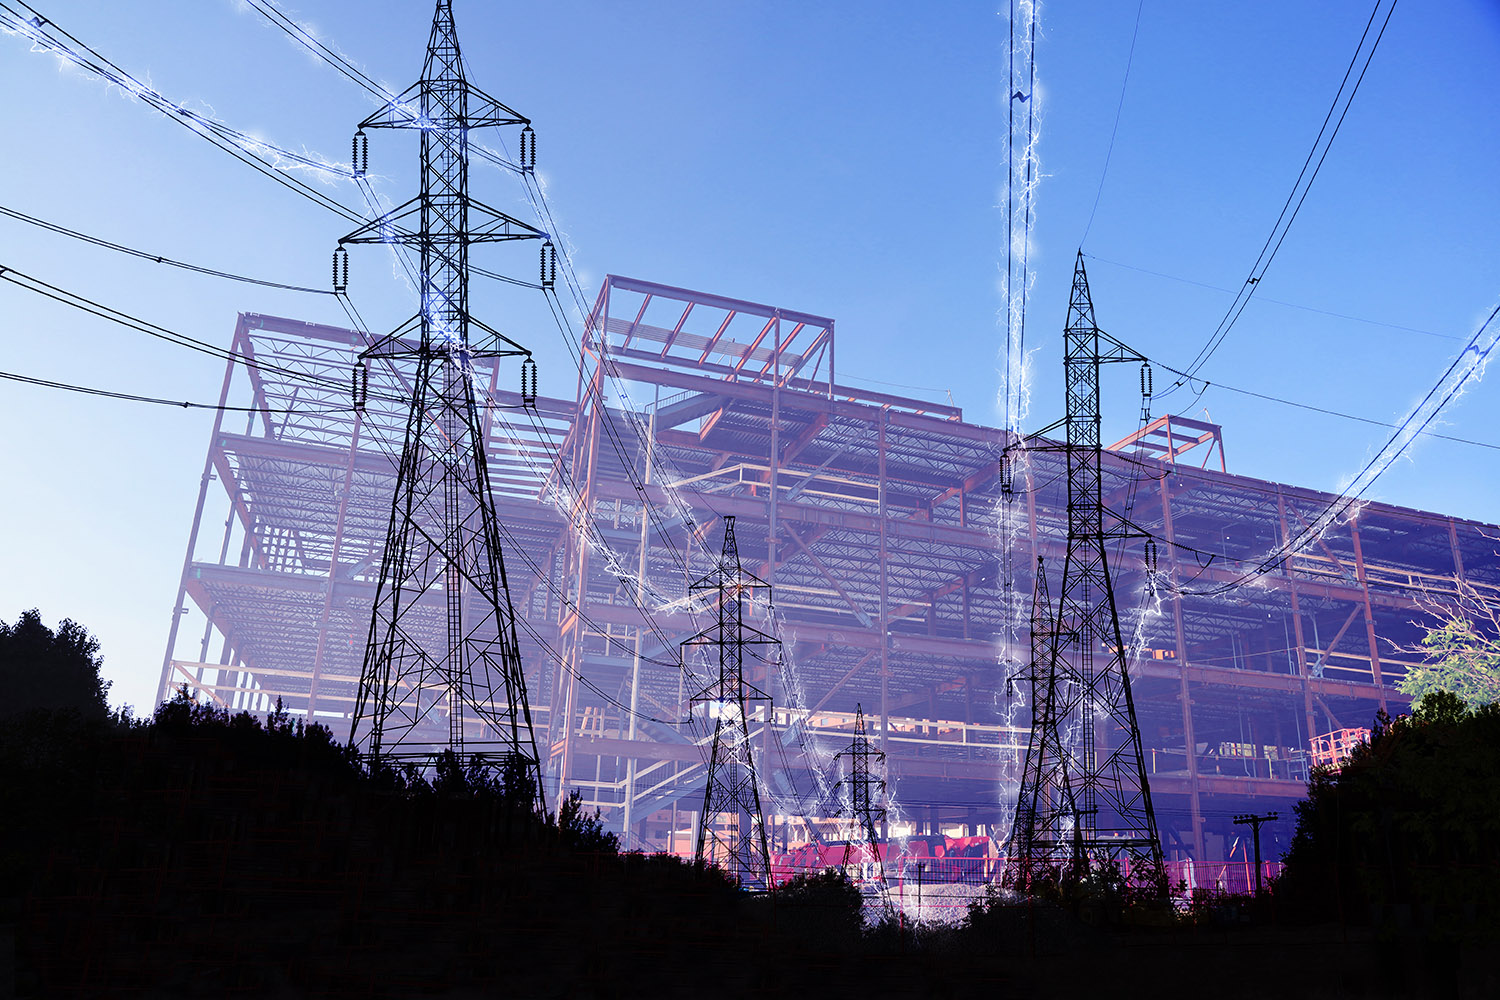 Construction Industry Electrification in Blue - Stock Photo